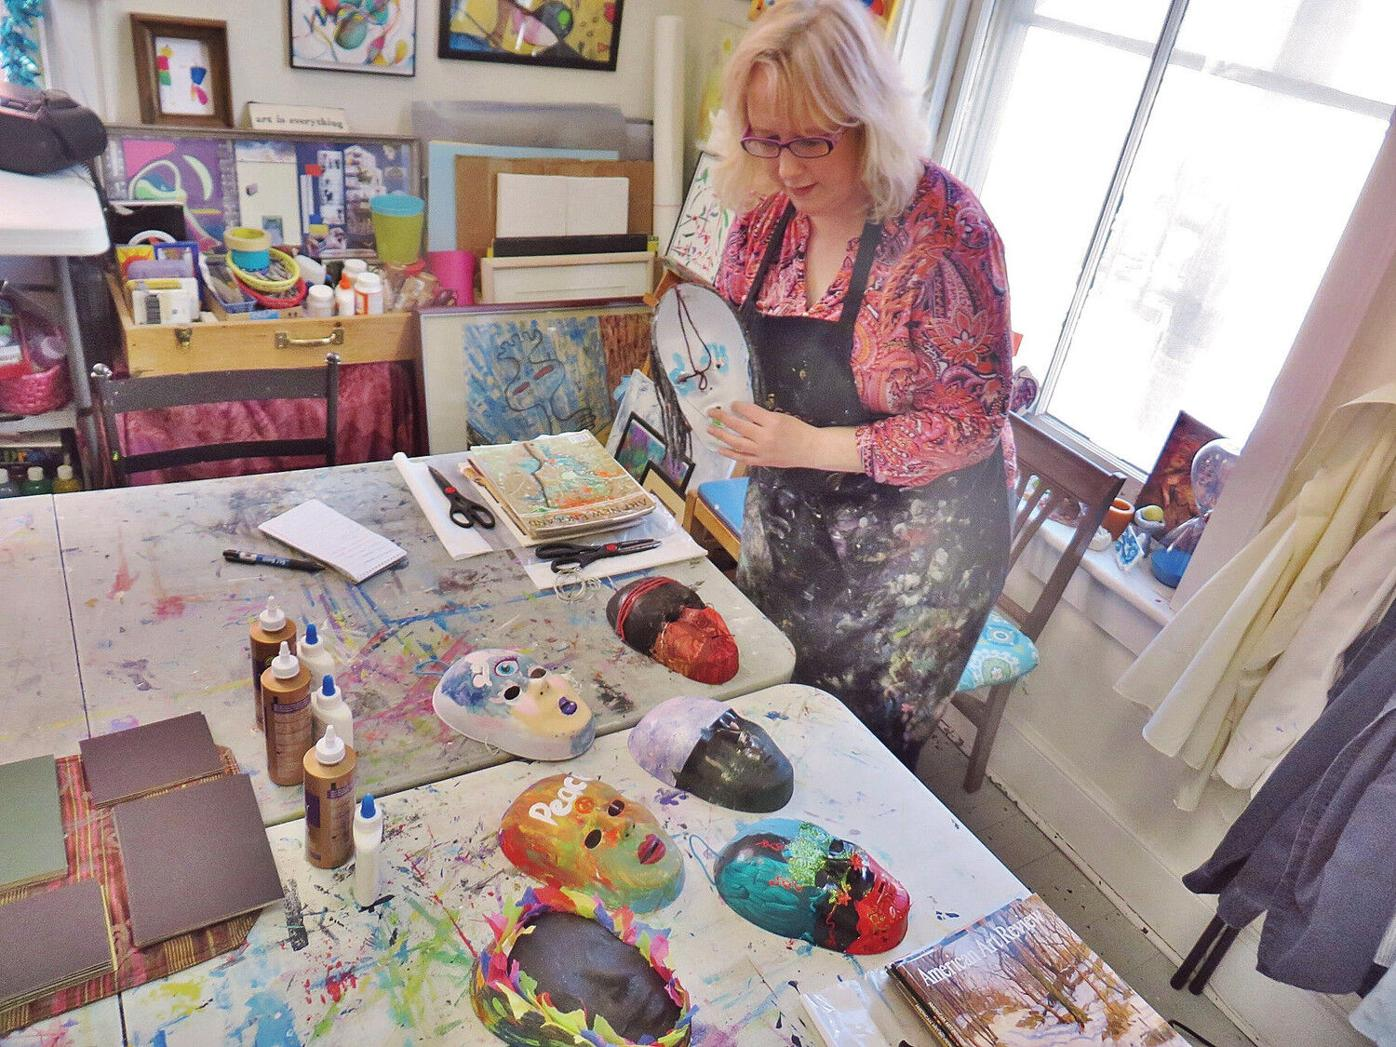 Berkshires art therapist awarded at Statehouse for work in youth suicide prevention